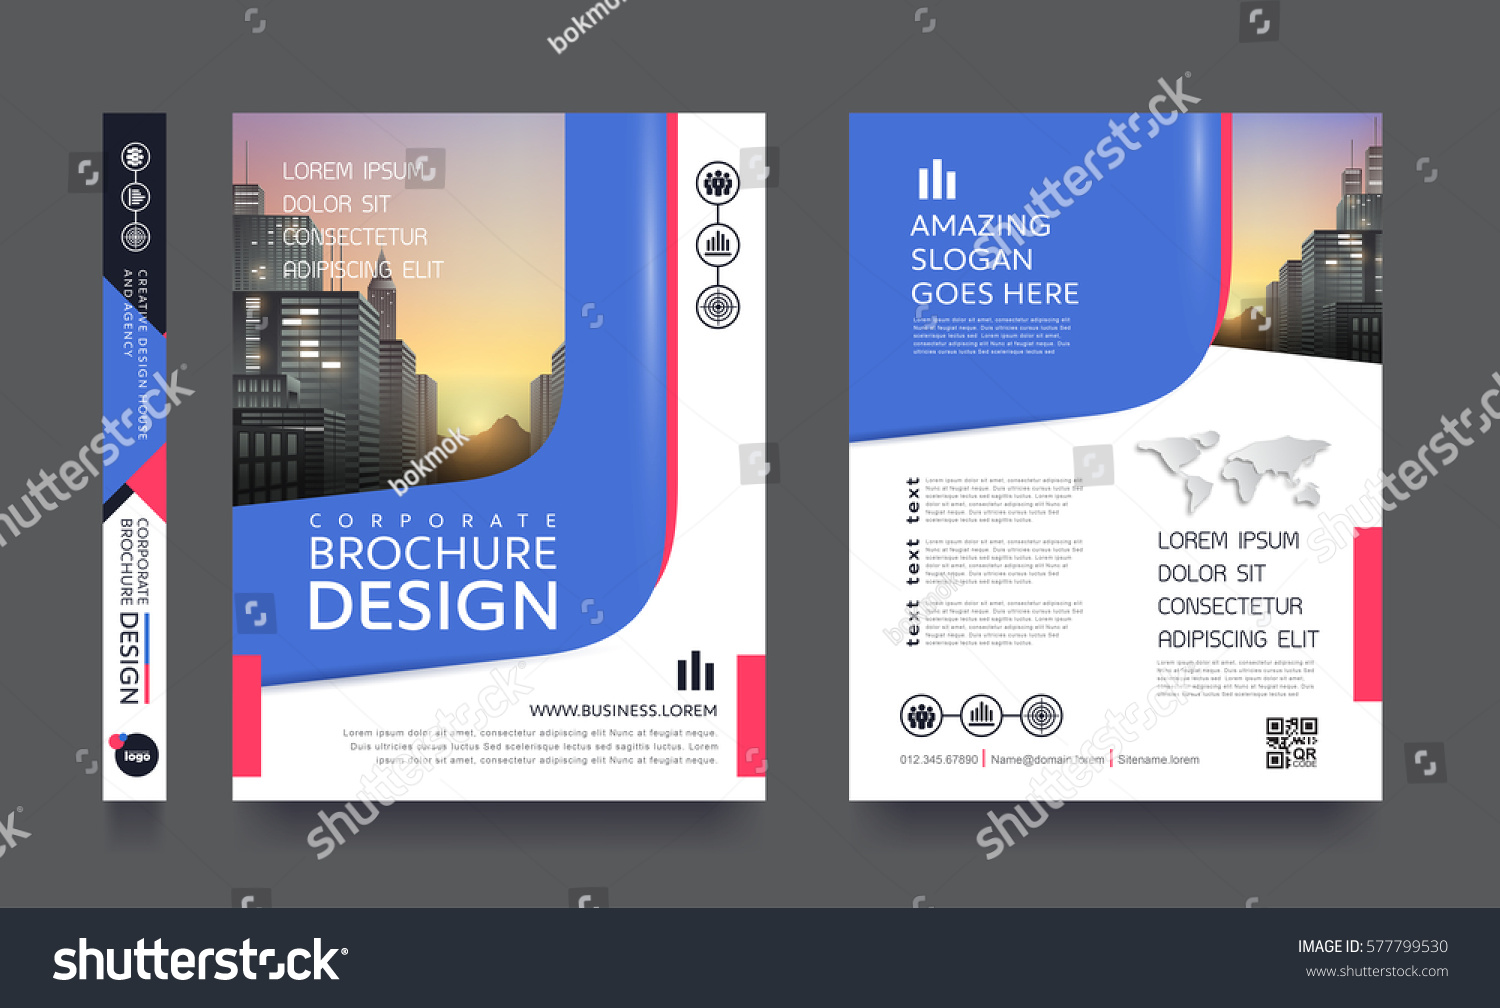 Poster design size - Poster Flyer Pamphlet Brochure Cover Design Layout Space For Photo Background Vector Template In A4